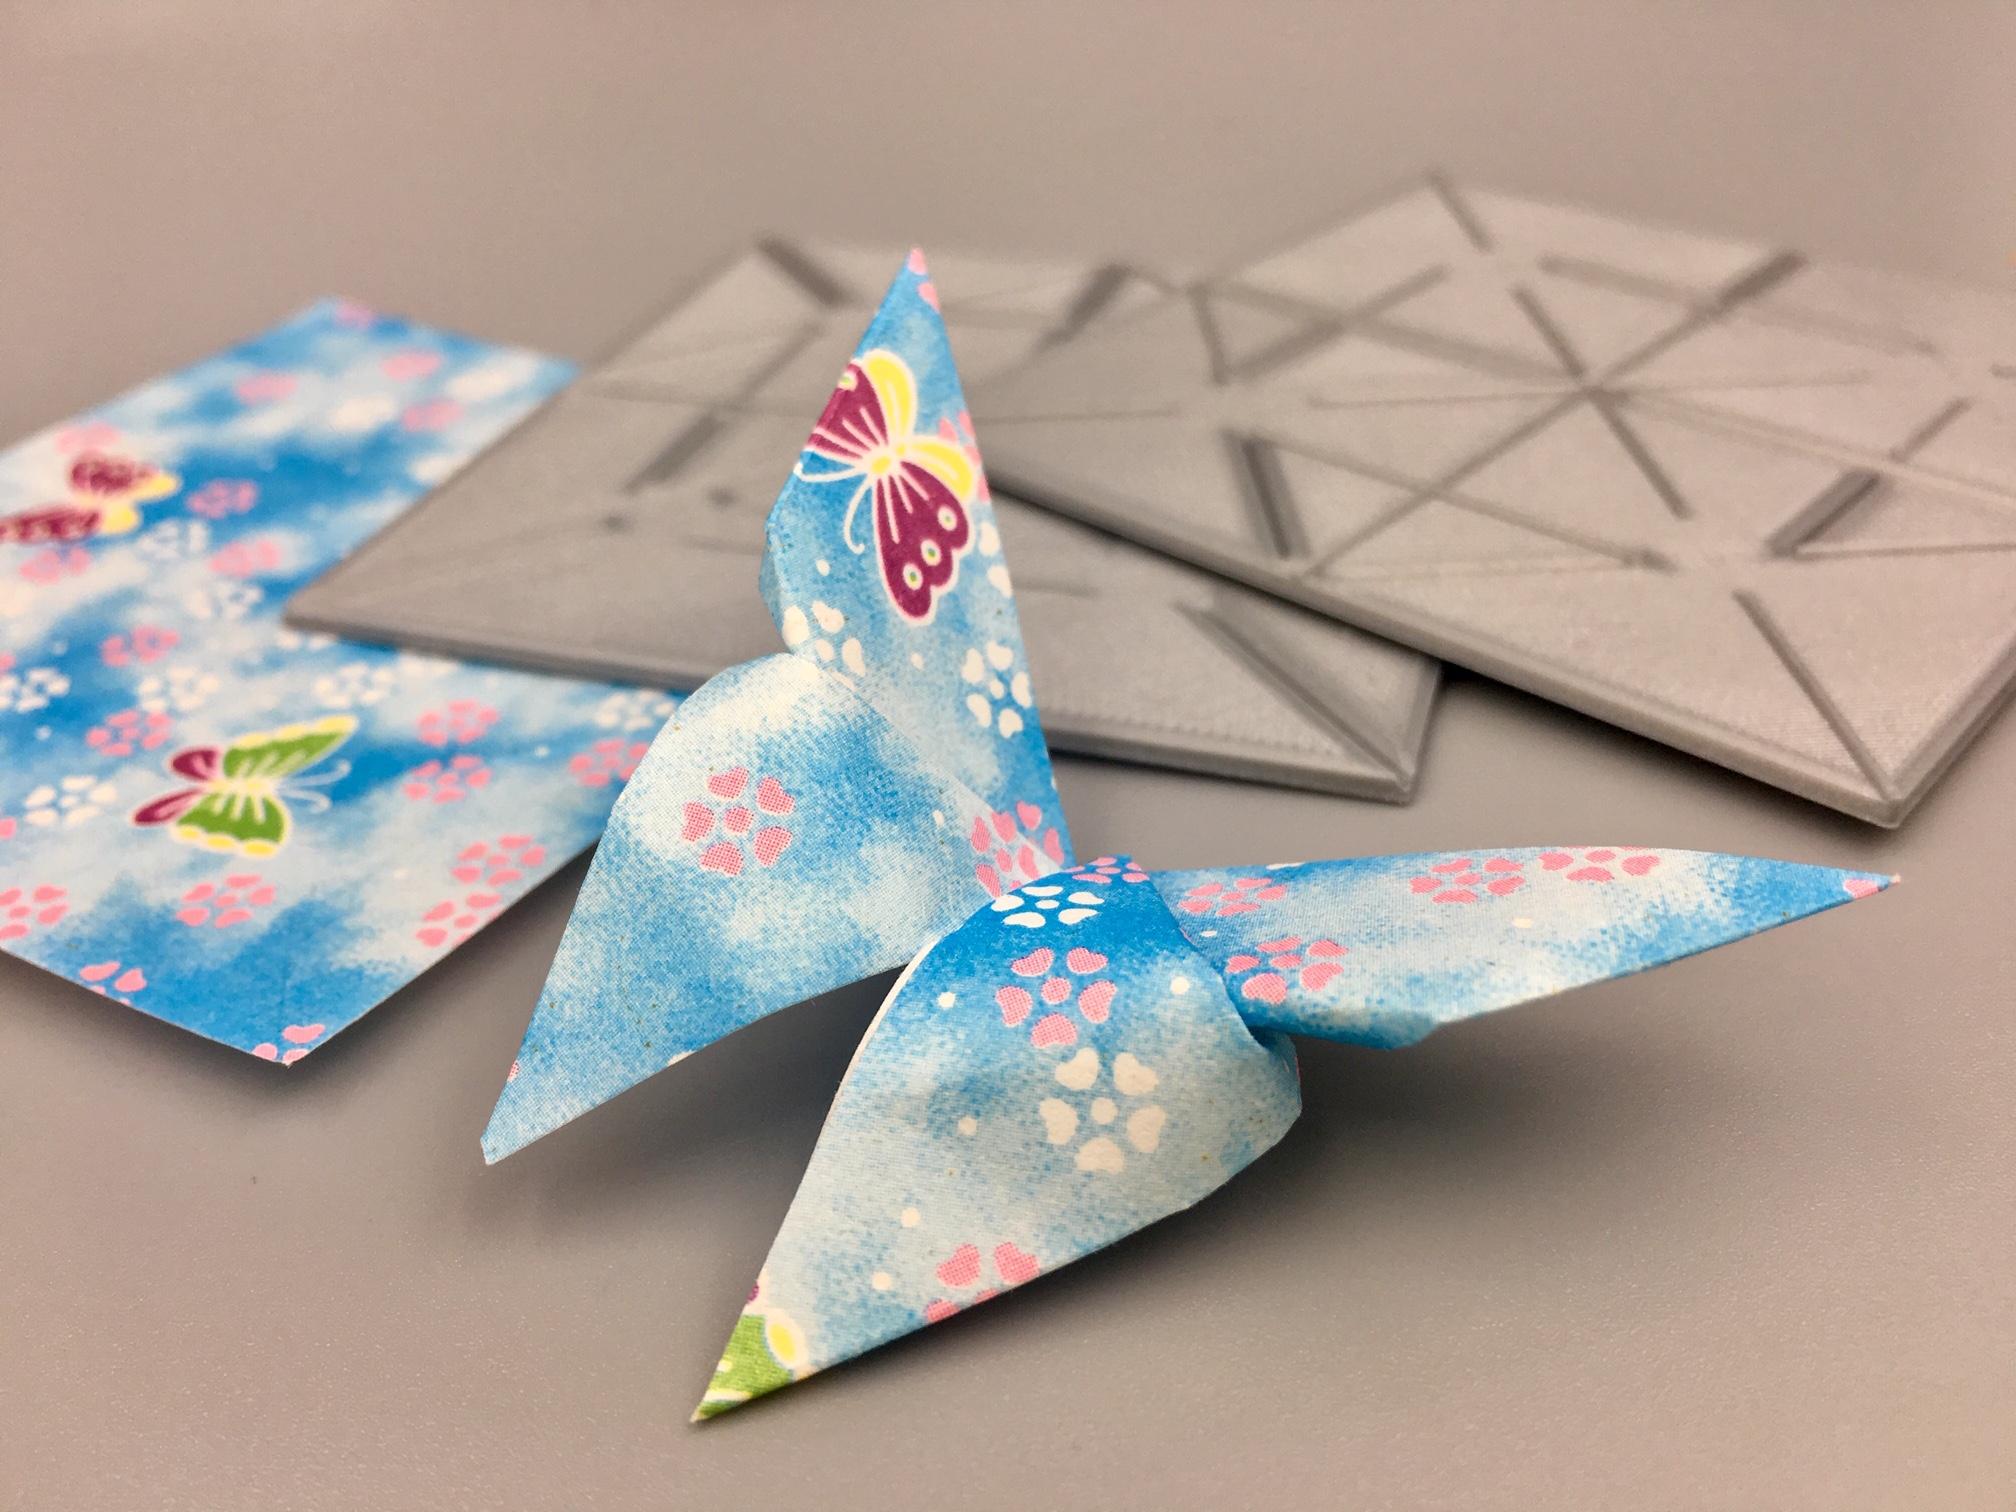 Refined easy origami butterfly | Origami butterfly easy, Origami ... | 1512x2016